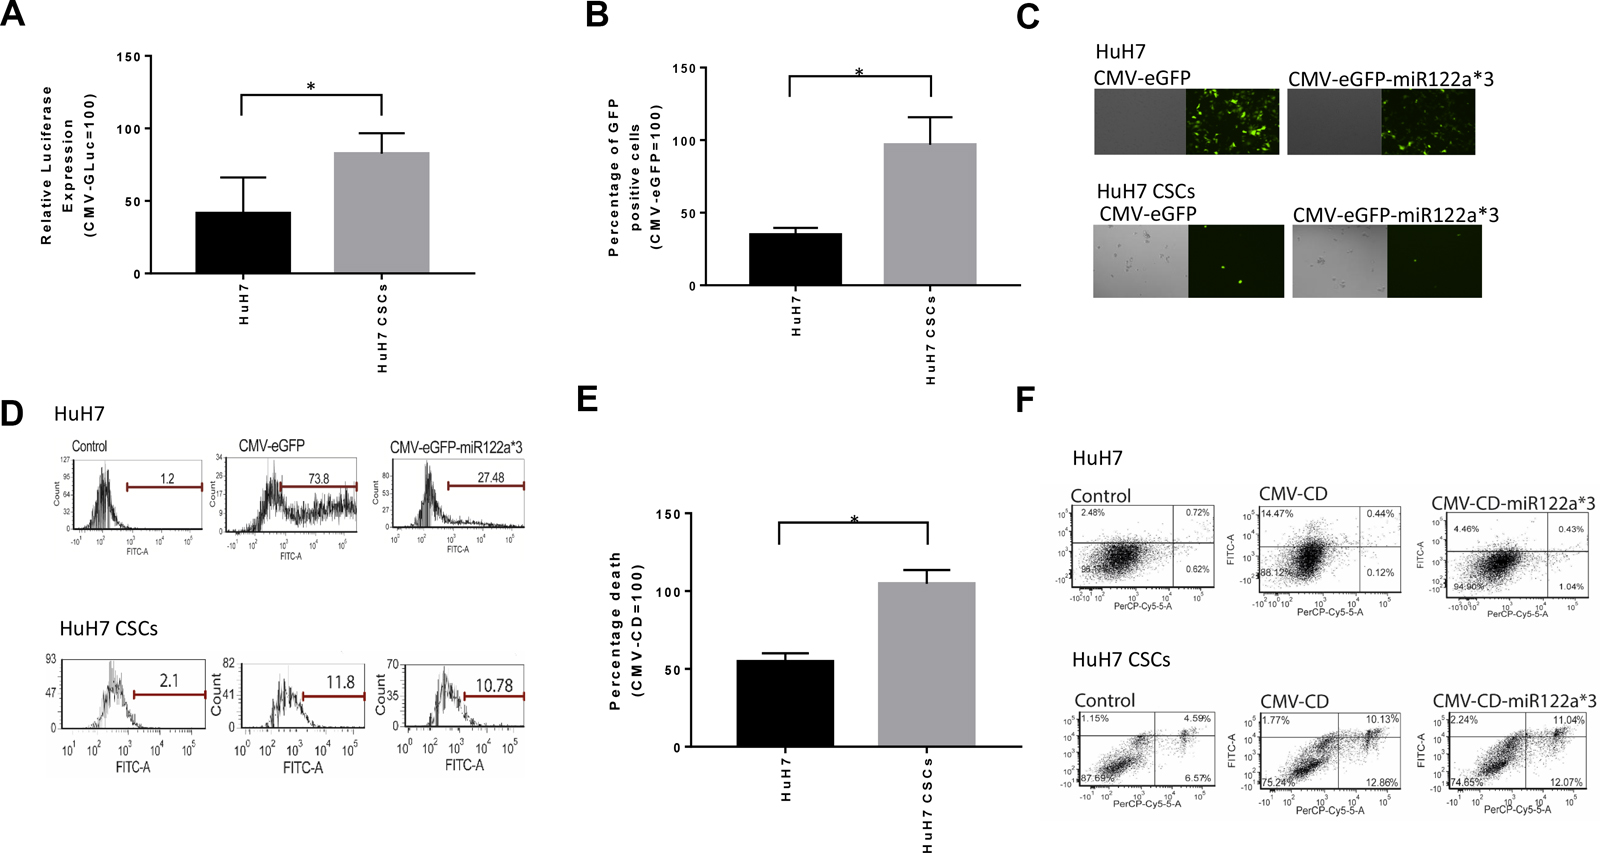 Downregulation of miRNA122a in stem cell enriched tumorspheres of HuH7 allows efficient targeting of these stem cell population.